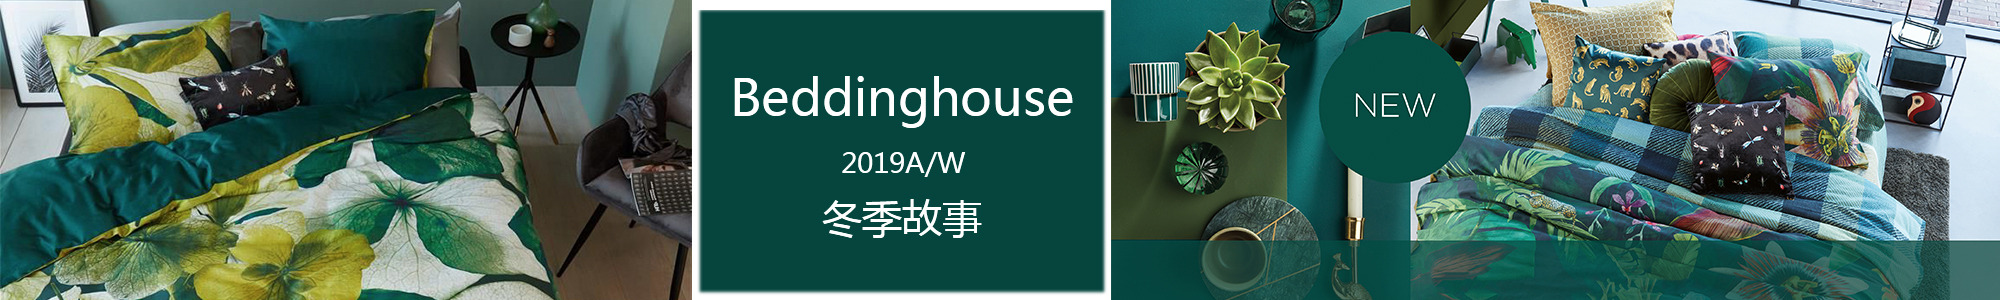 Beddinghouse 床品套件